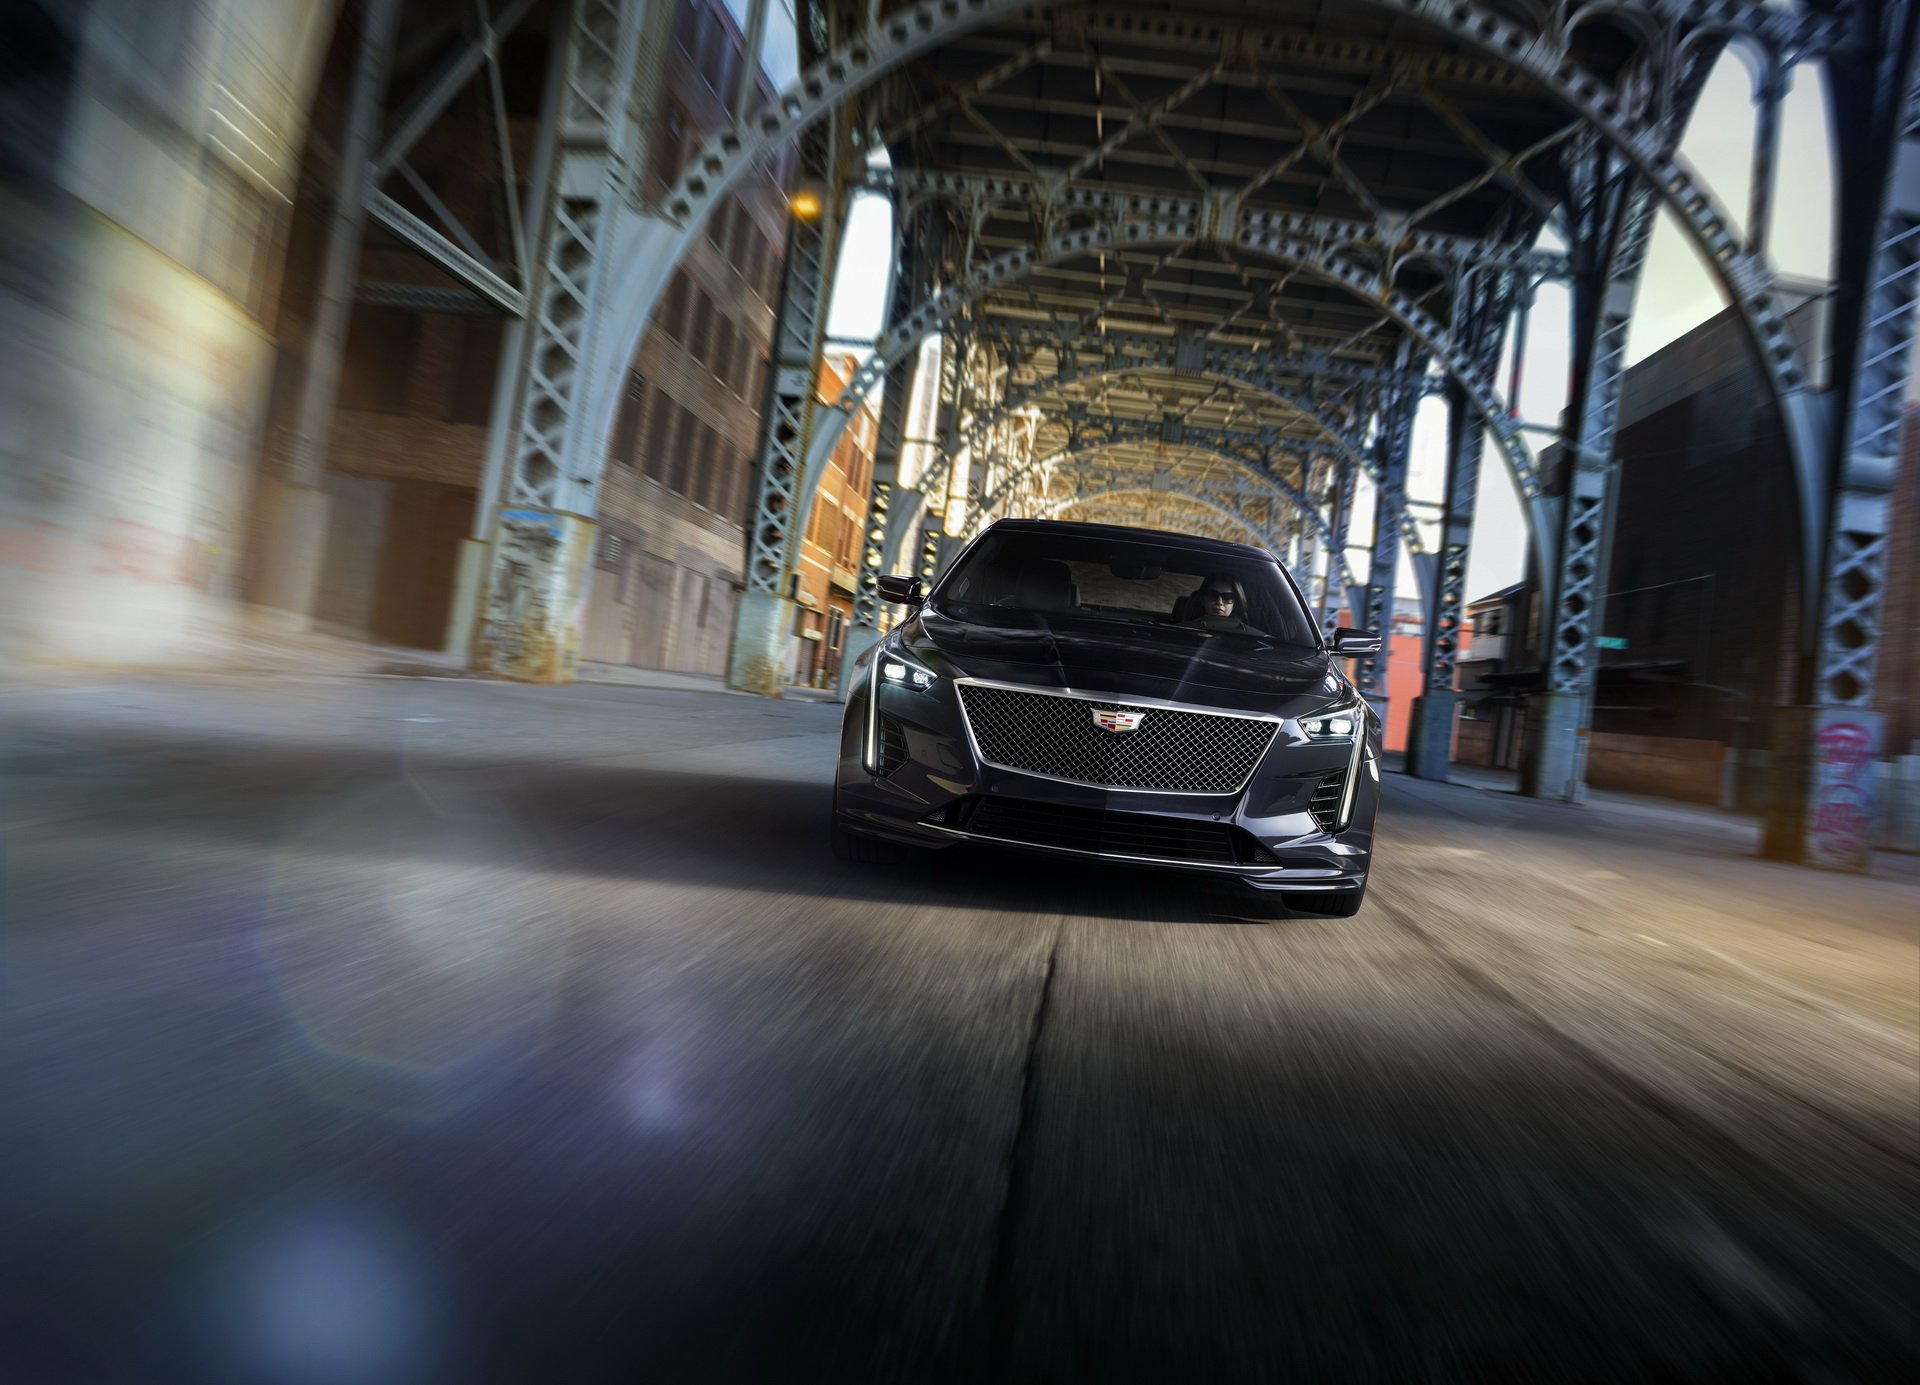 Cts V Turbo >> Cadillac Blackwing V8 Is Handcrafted At Corvette Plant In ...